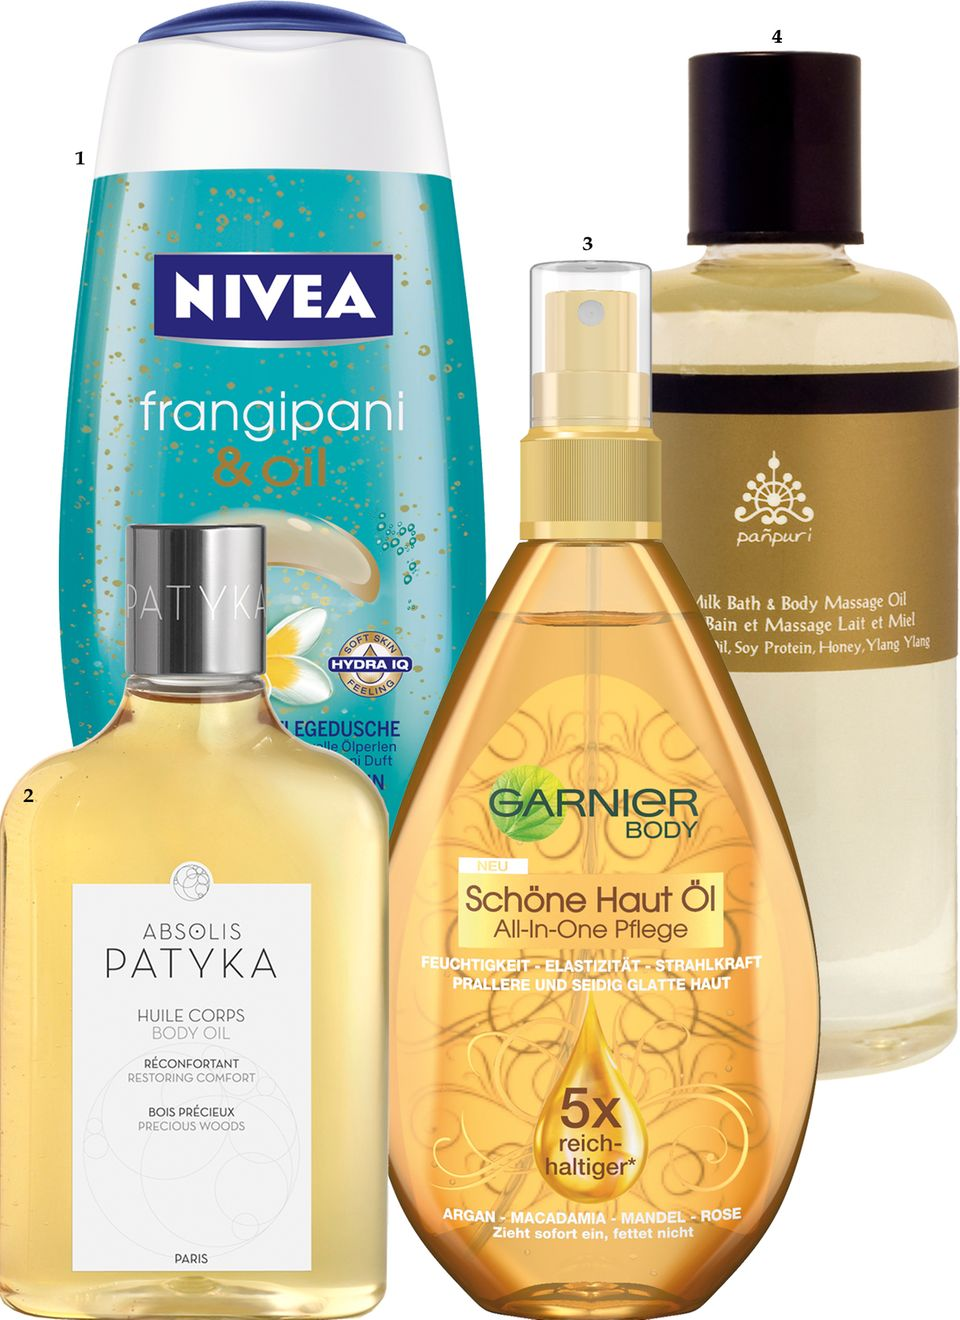 "Hochdosierte Bodybuilder   1 ""Pflegedusche Frangipani & Oil"" von Nivea, 250 ml, ca. 2,20 Euro; 2 Absolis Huile Corps"" von Patyka, 250 ml, ca. 50 Euro; 3 ""Schöne Haut Öl All-in-One Pflege"" von Garnier, 150 ml, ca. 7 Euro; 4 ""Honey Milk Bath & Body Massage Oil"" von Panpuri, 300 ml, ca. 60 Euro"